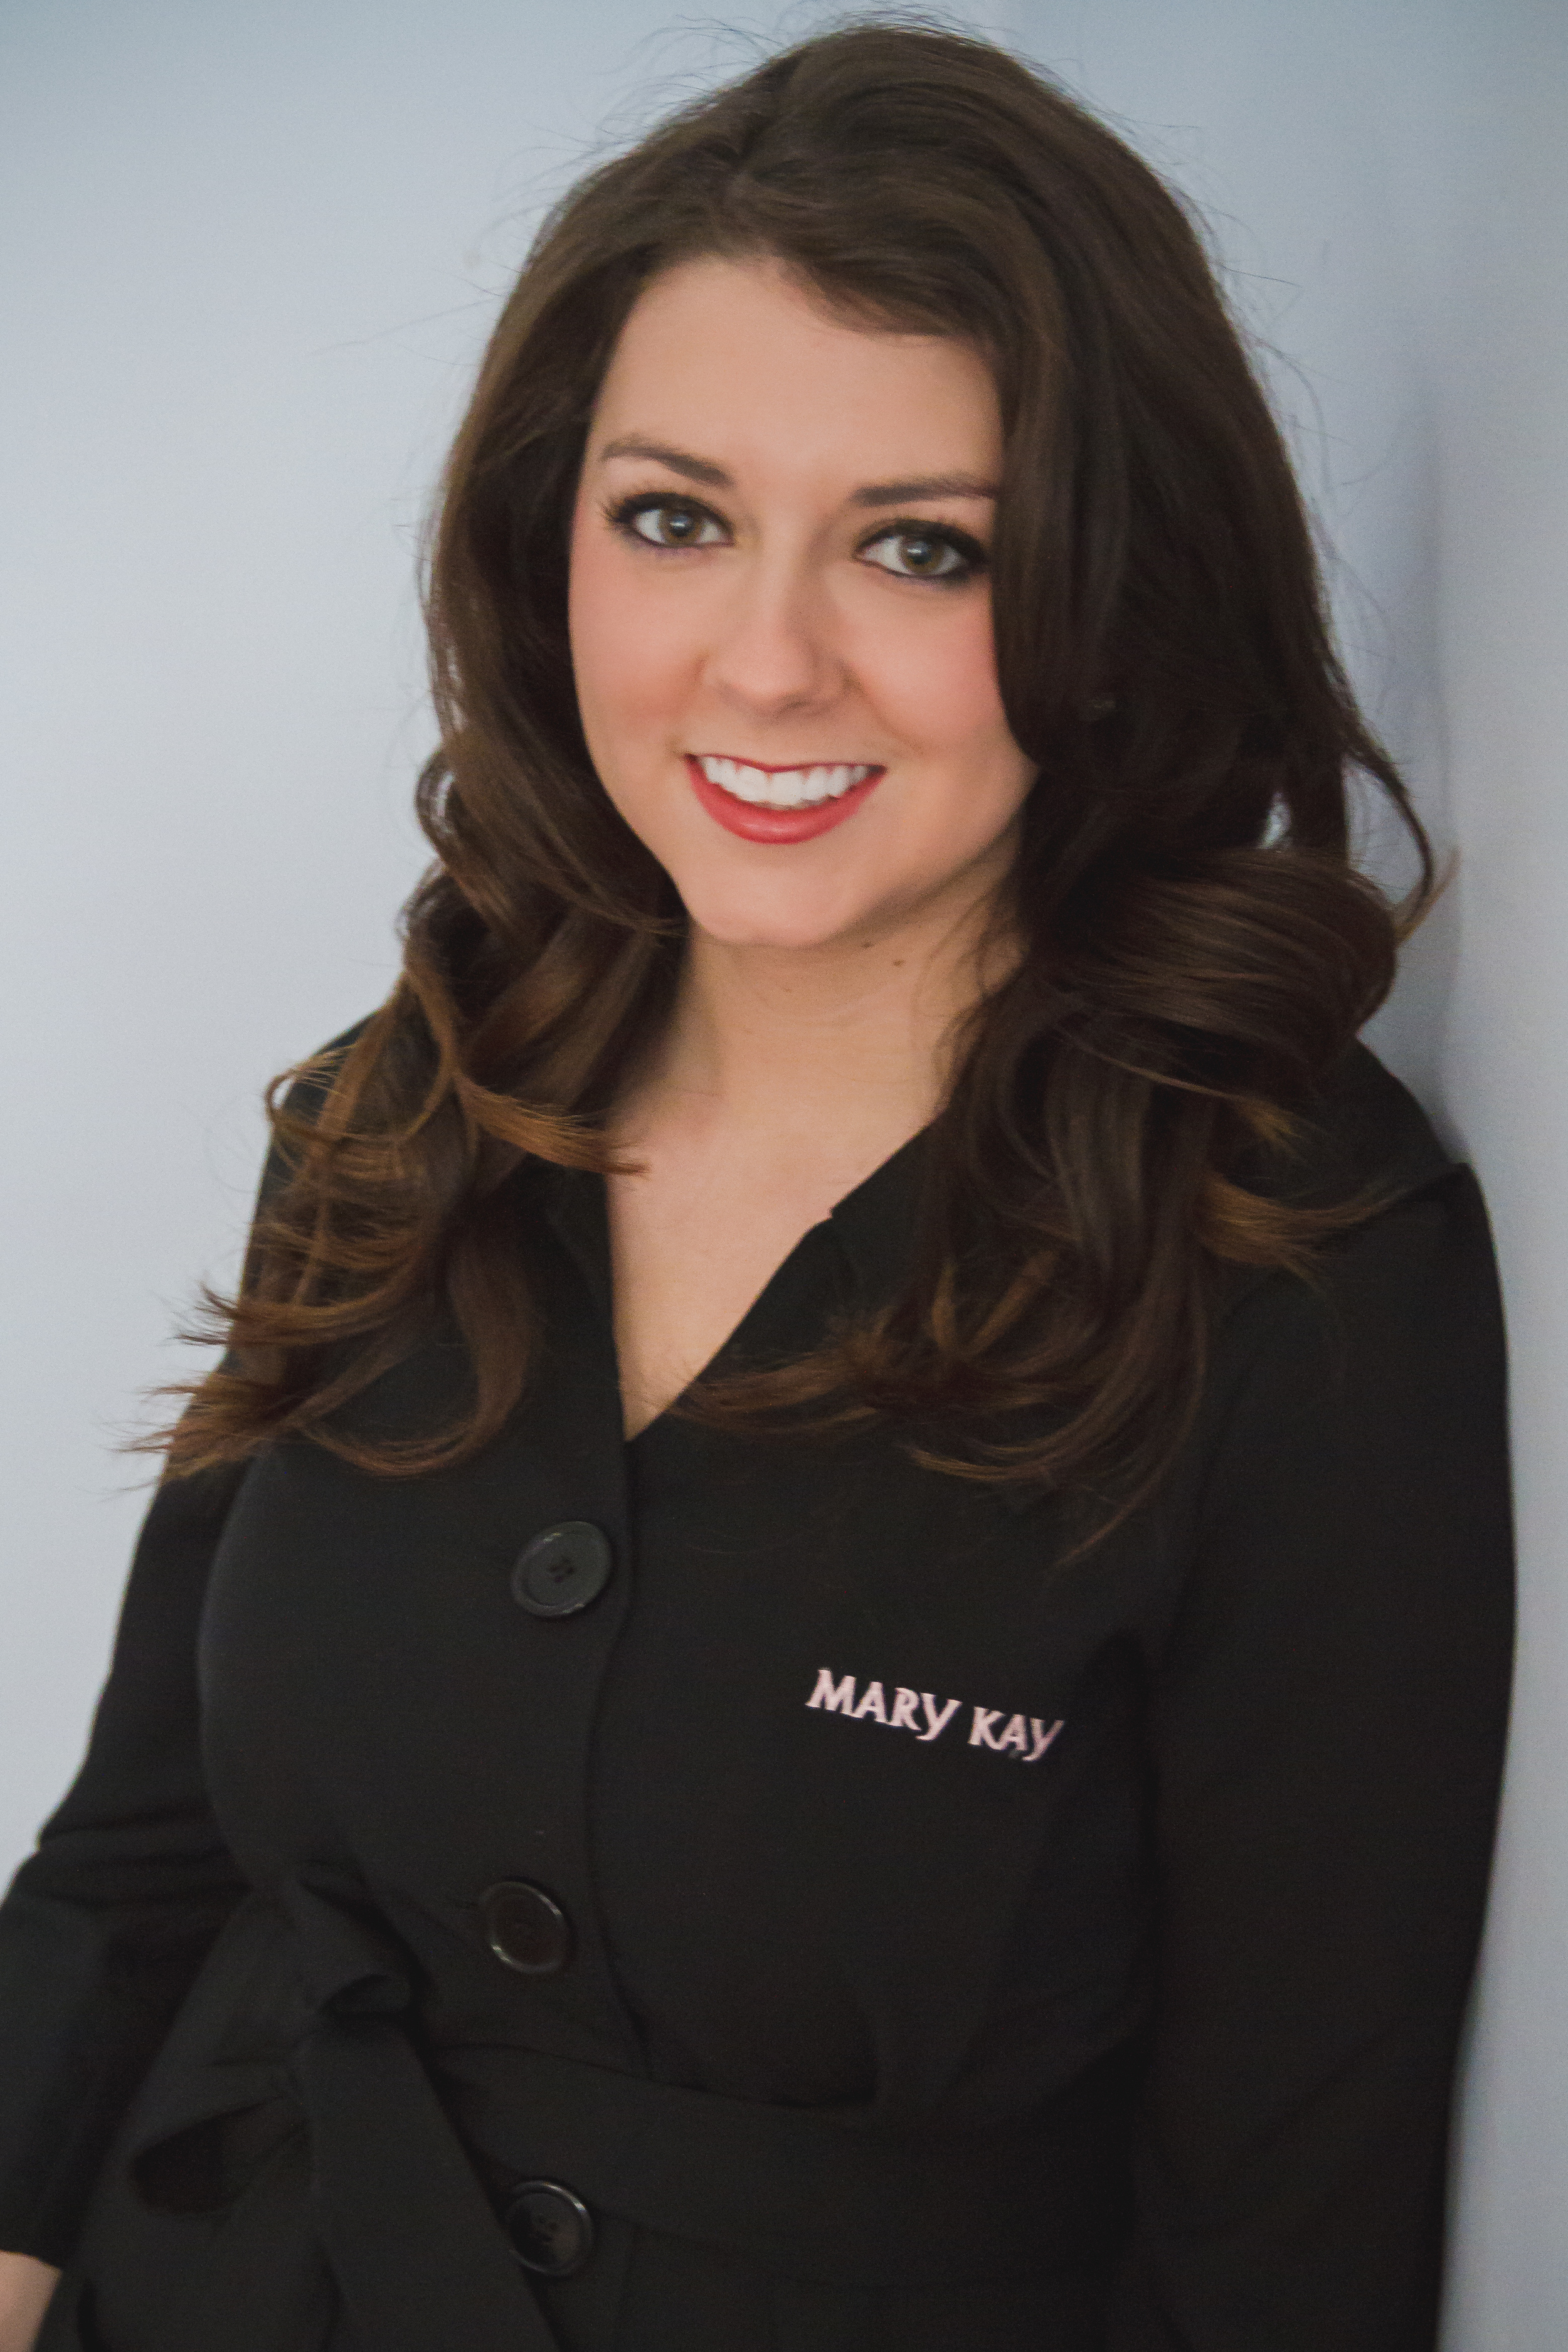 Missy Weisser, Mary Kay Consultant